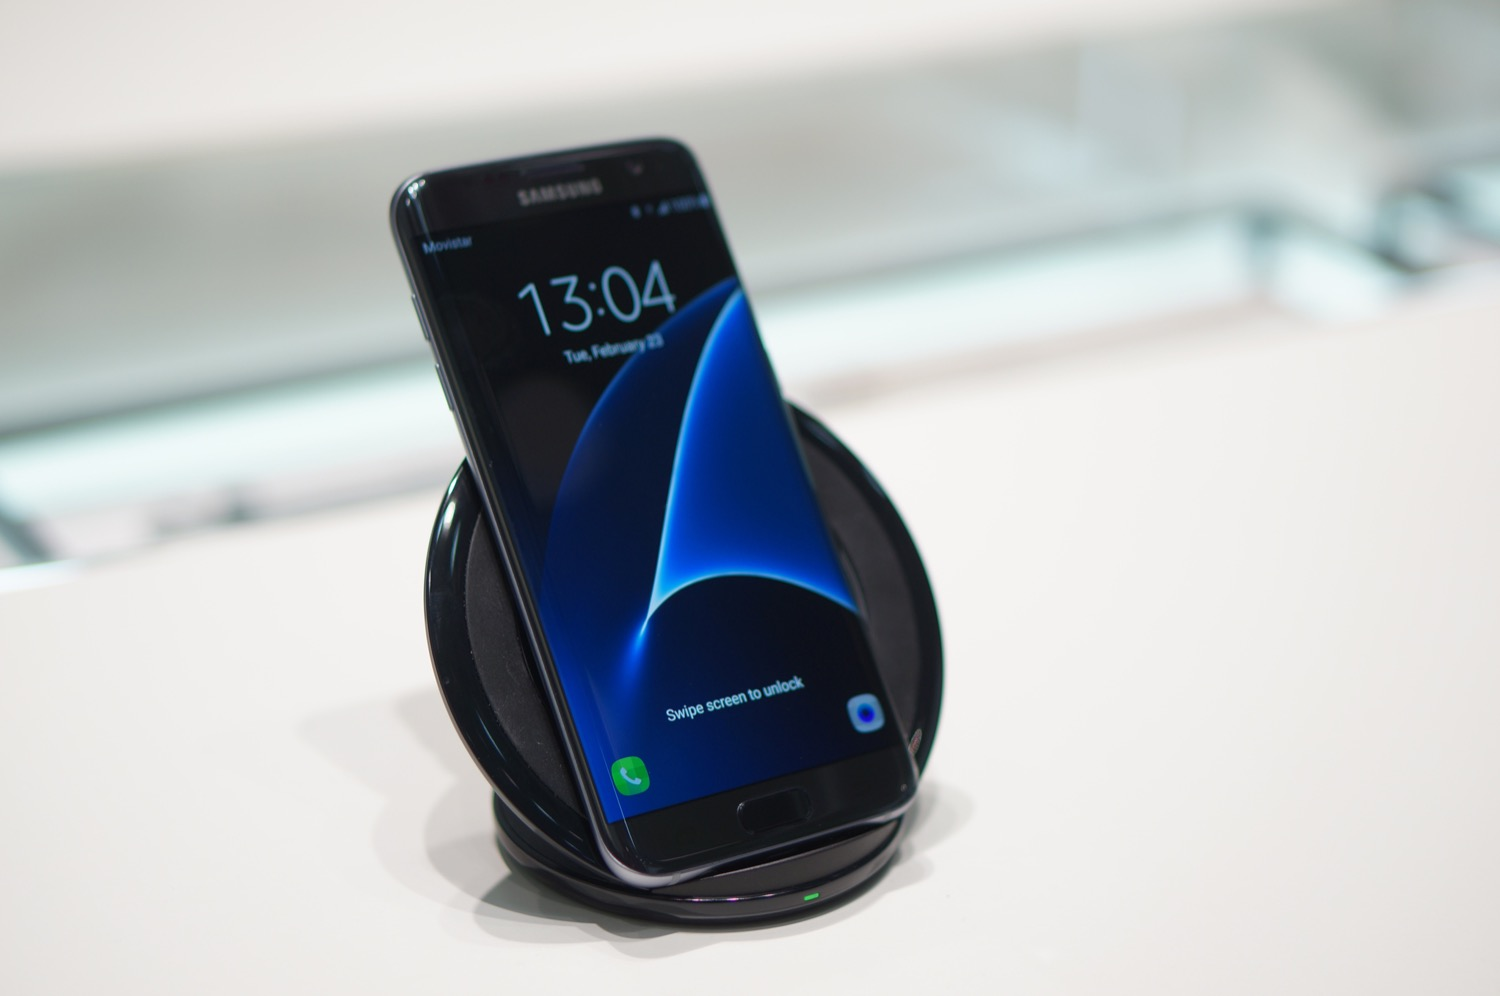 samsung s7 induction